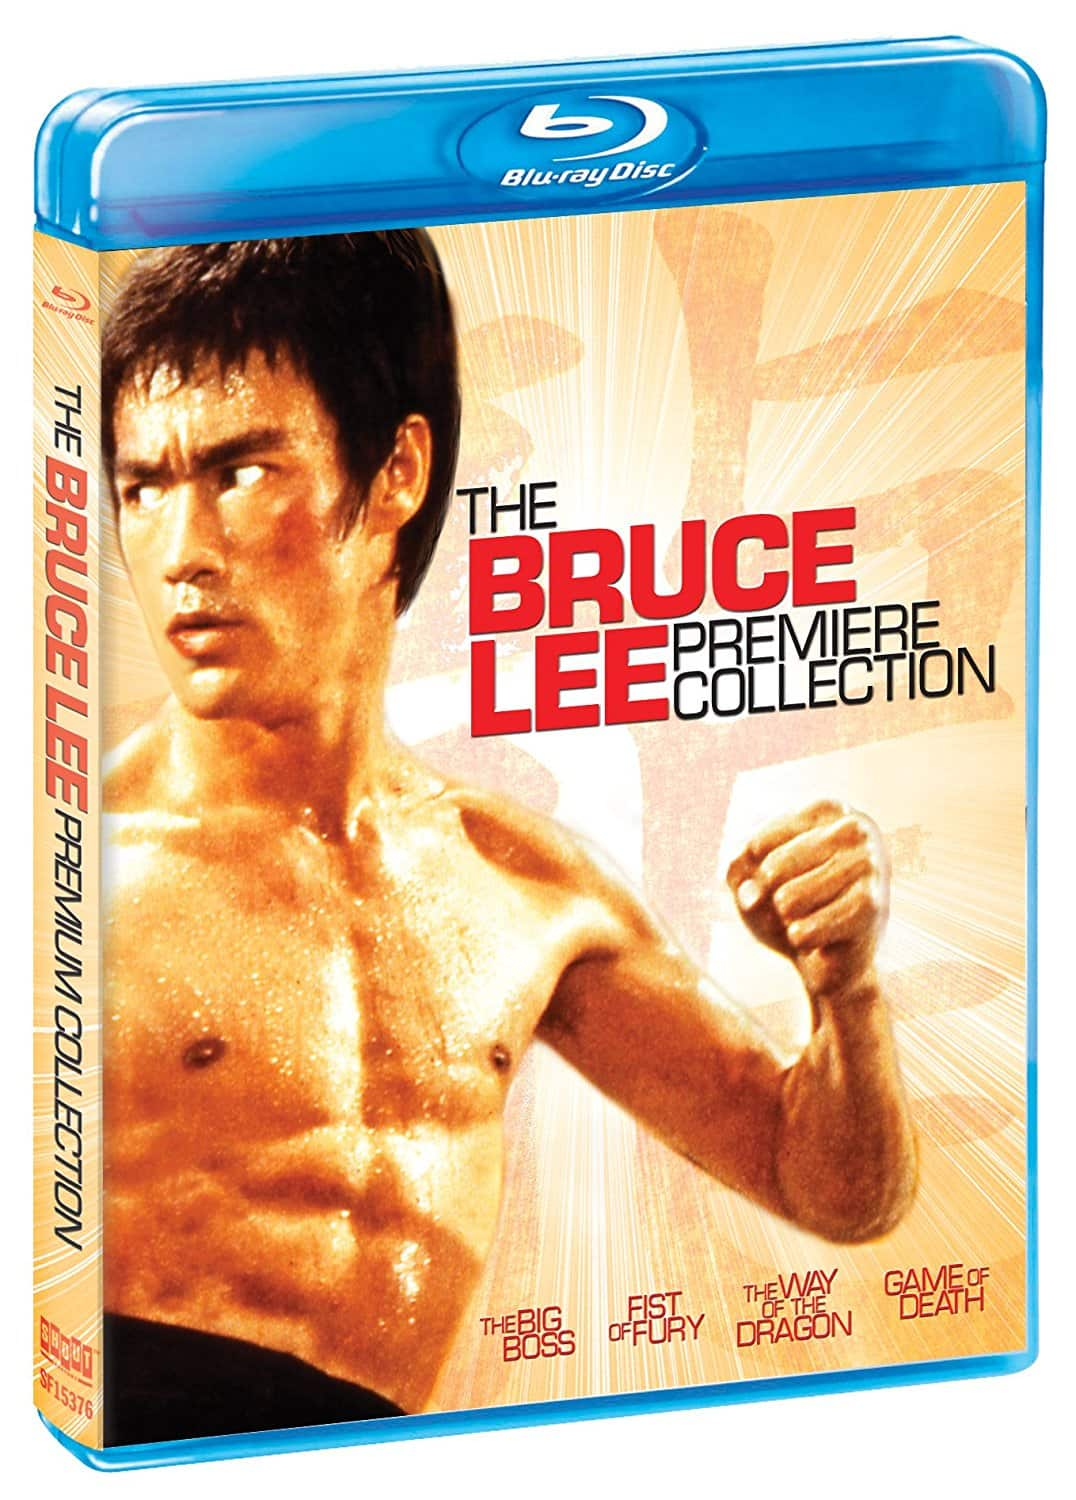 The Bruce Lee Premiere Collection (Blu-ray) $15.95 Shipped